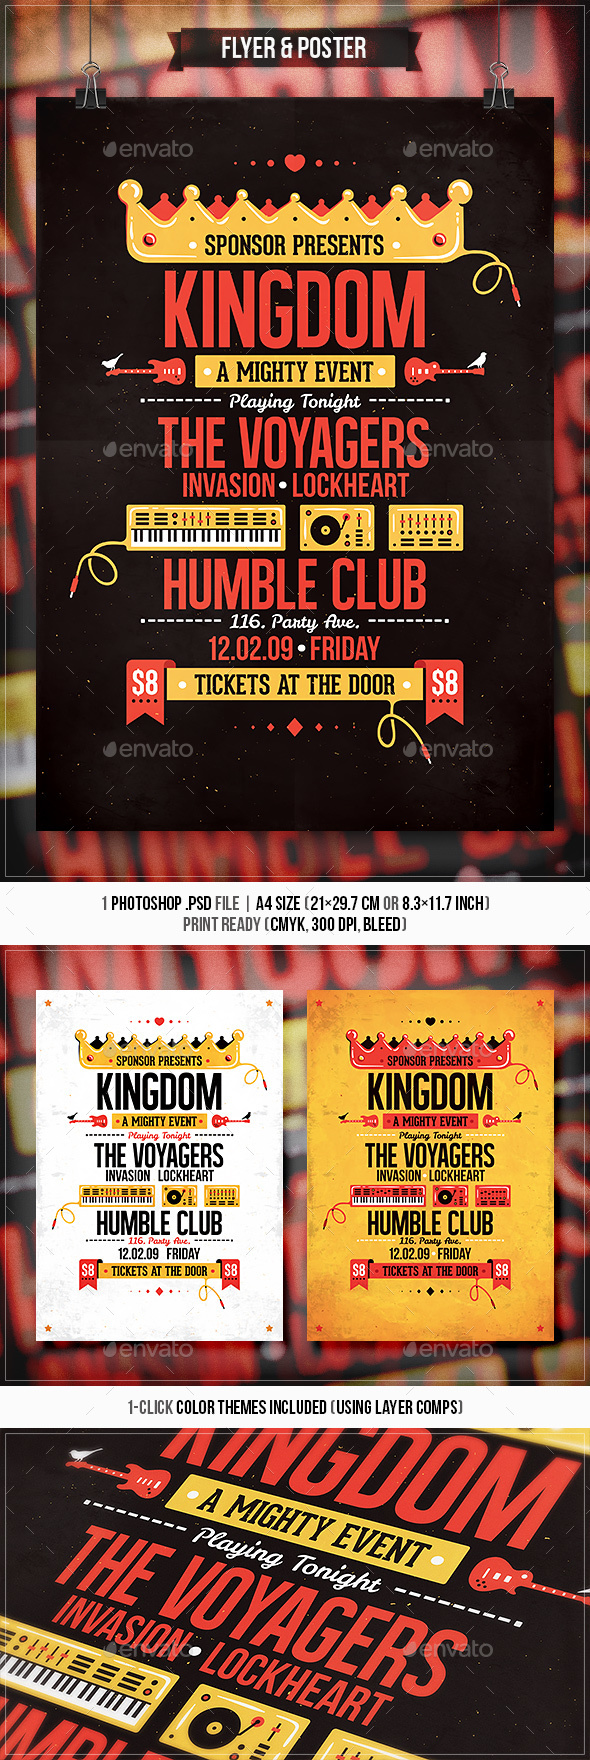 Kingdom - Flyer & Poster - Concerts Events